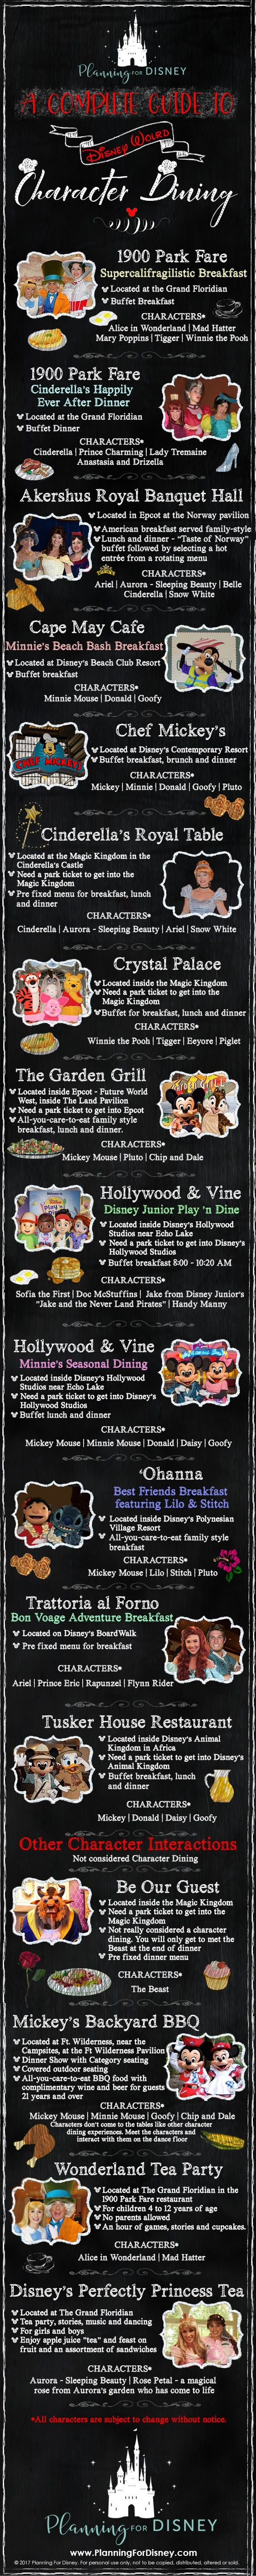 There a lot of character dining at Walt Disney World. I have created a guide to help you choose what character dining is best for you. Find out what are the best character dining restaurants in Walt Disney World. • Planning For Disney